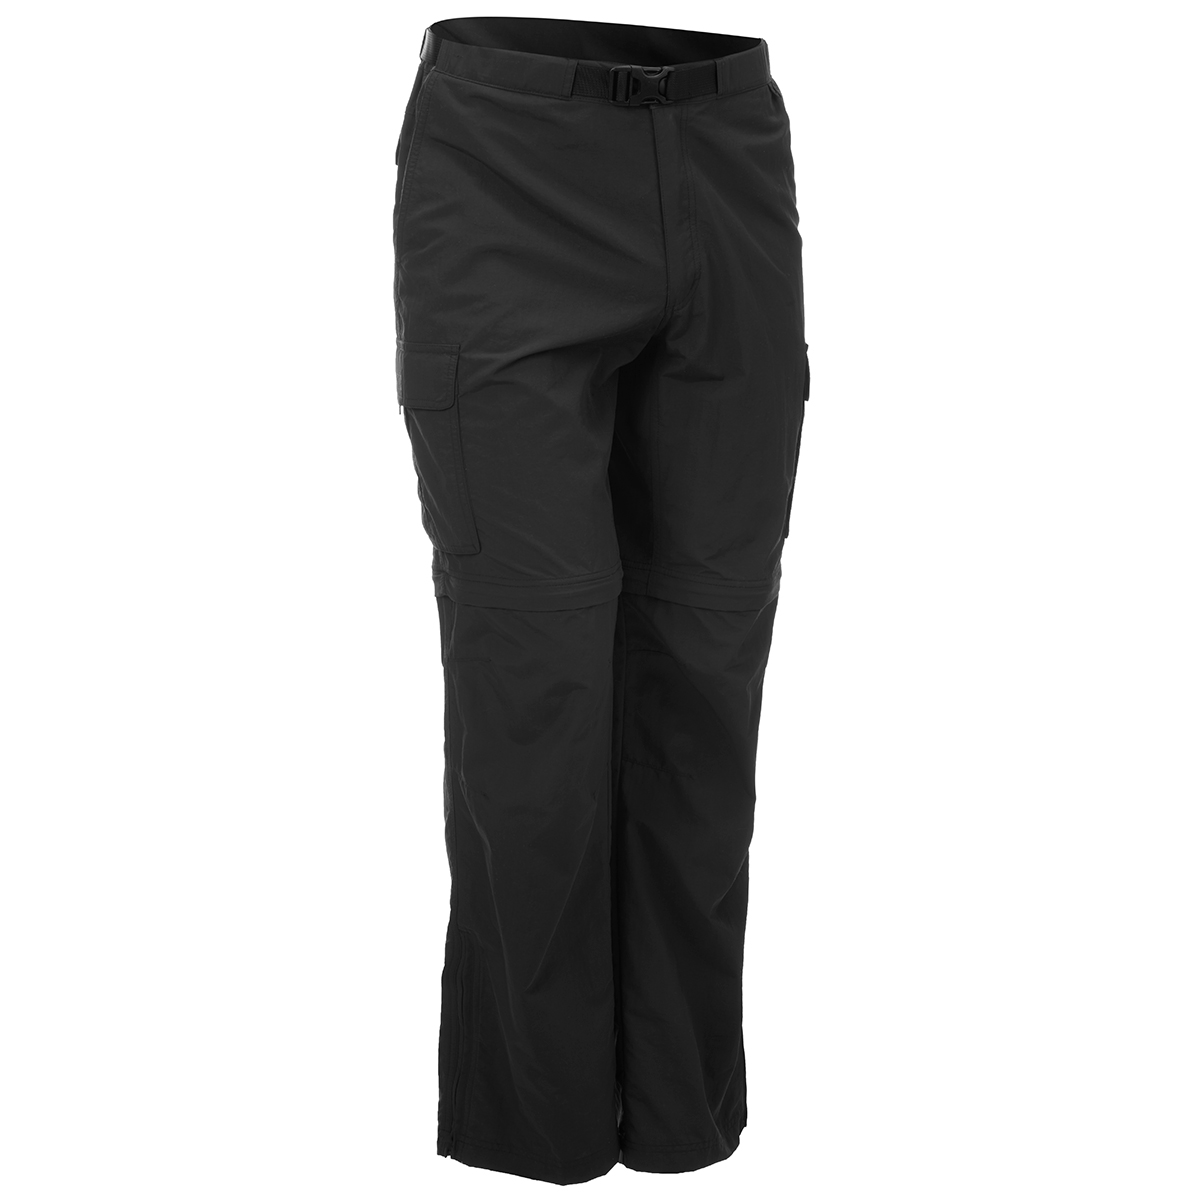 Ems Men's Camp Cargo Zip-Off Pants - Black, 34/30